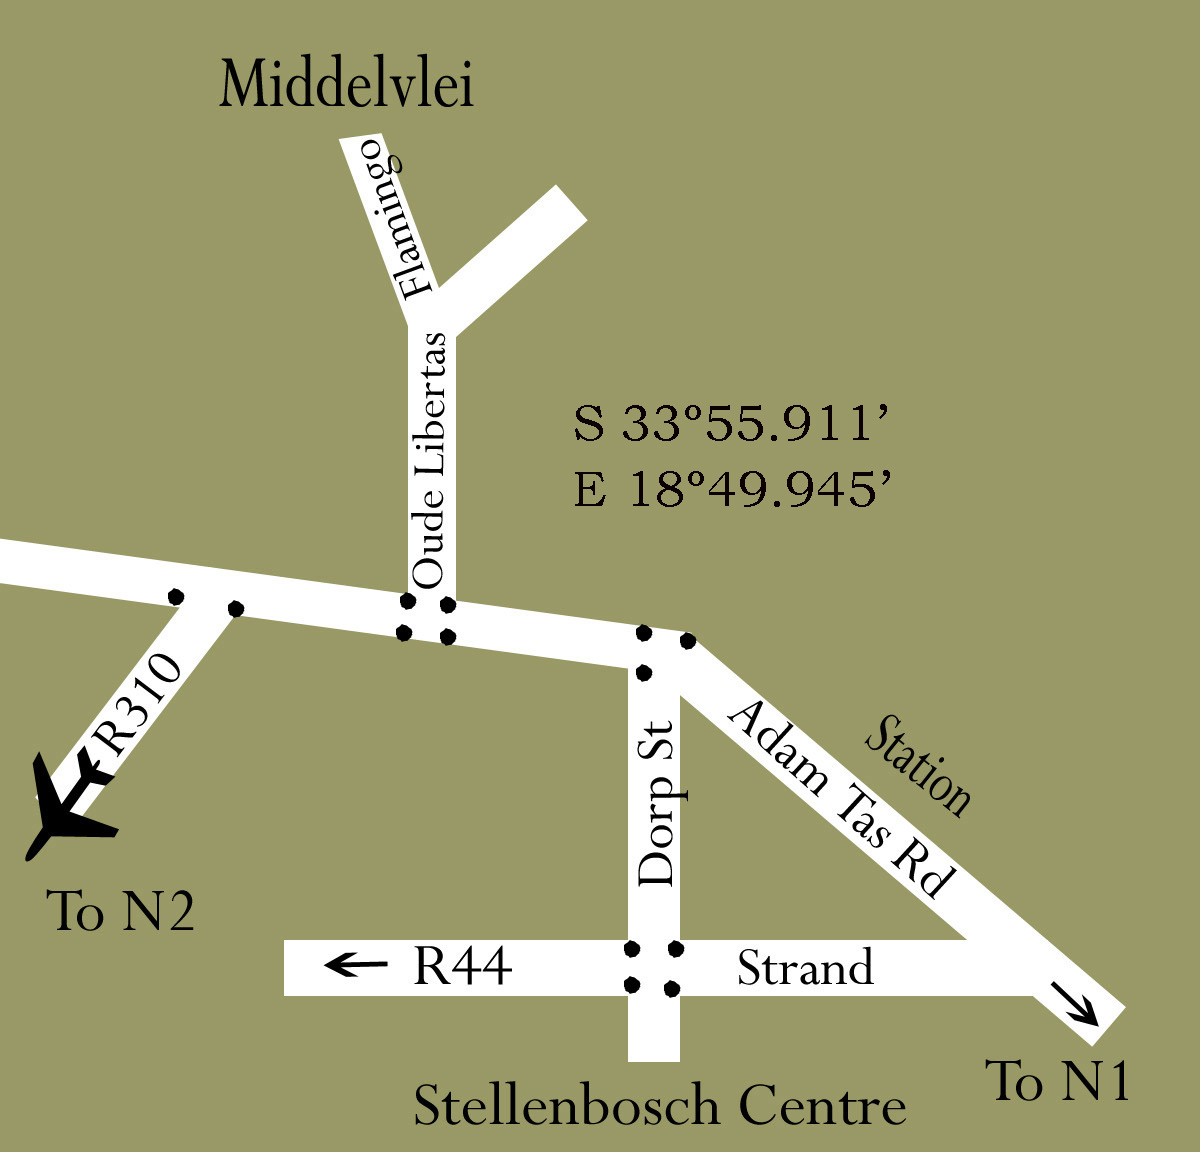 Middelvlei_map